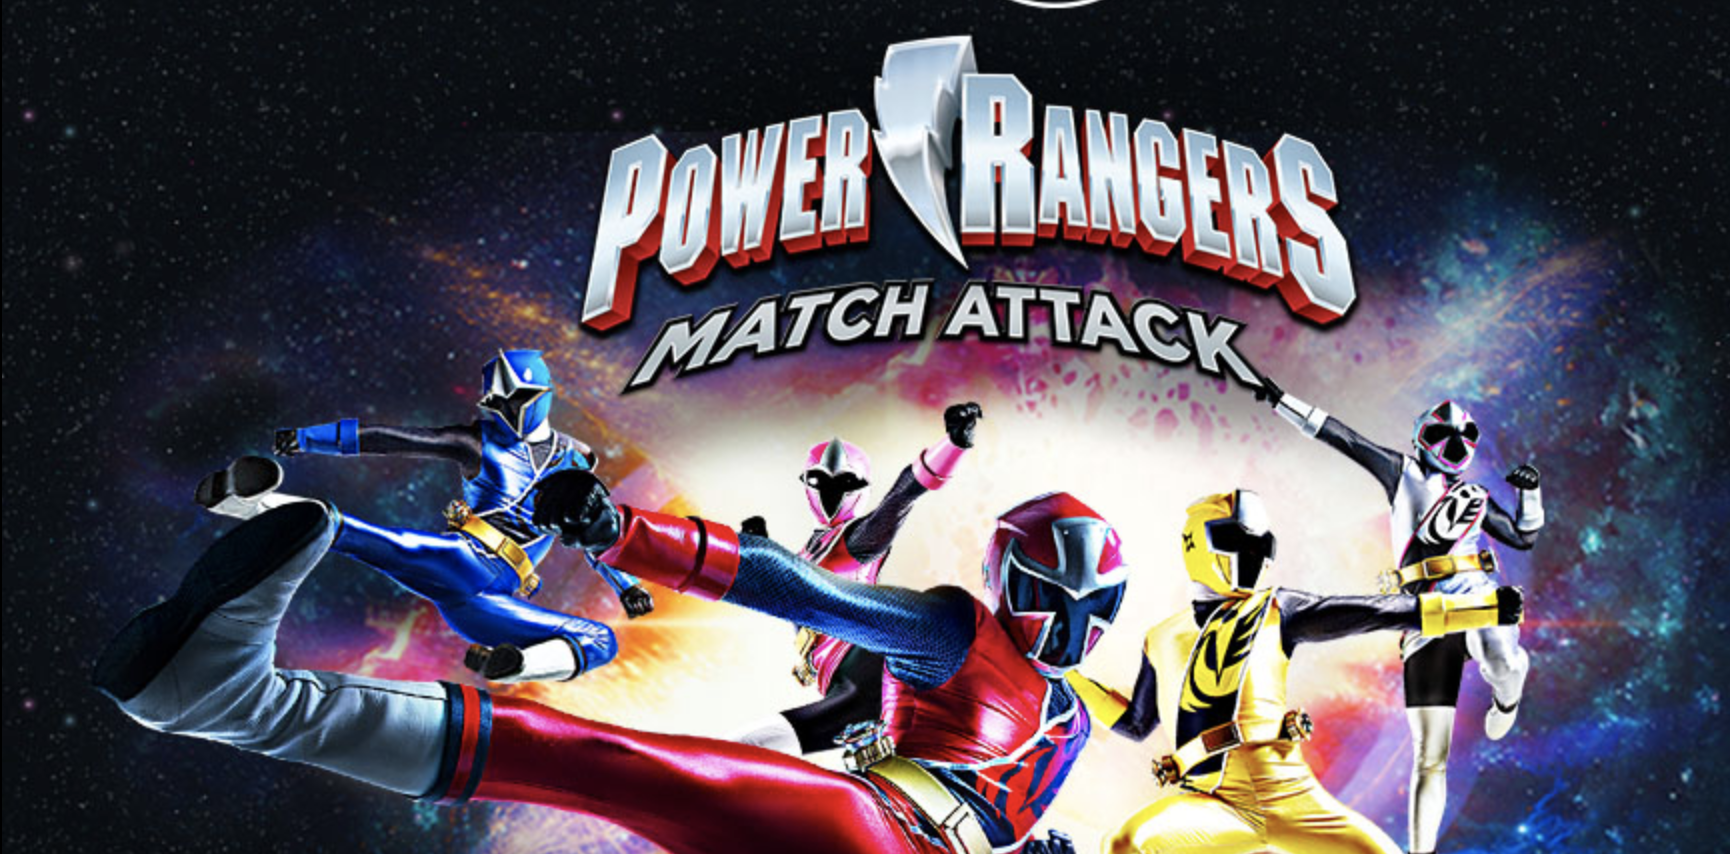 Play Power Rangers Match Attack Game in